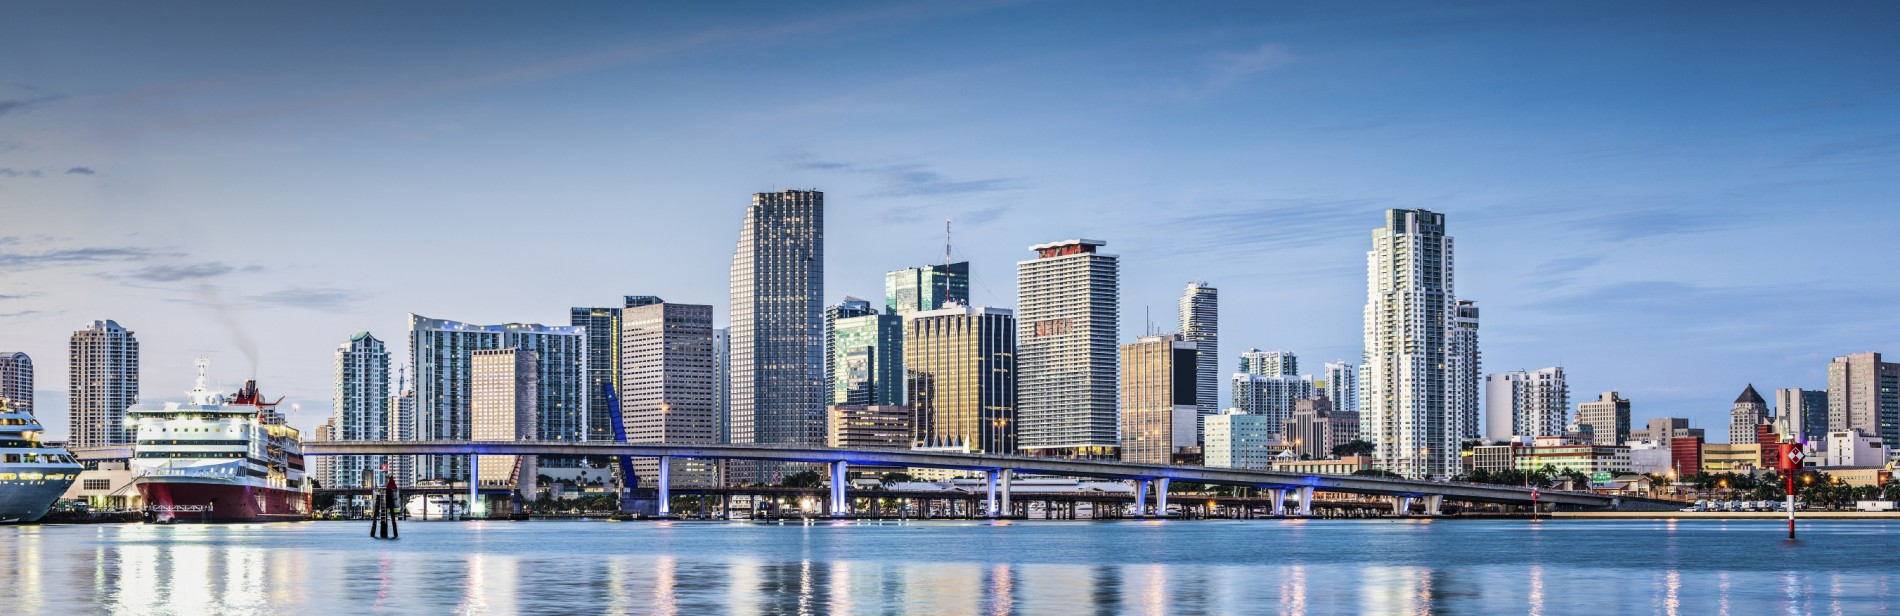 Miami Skyline Brickell